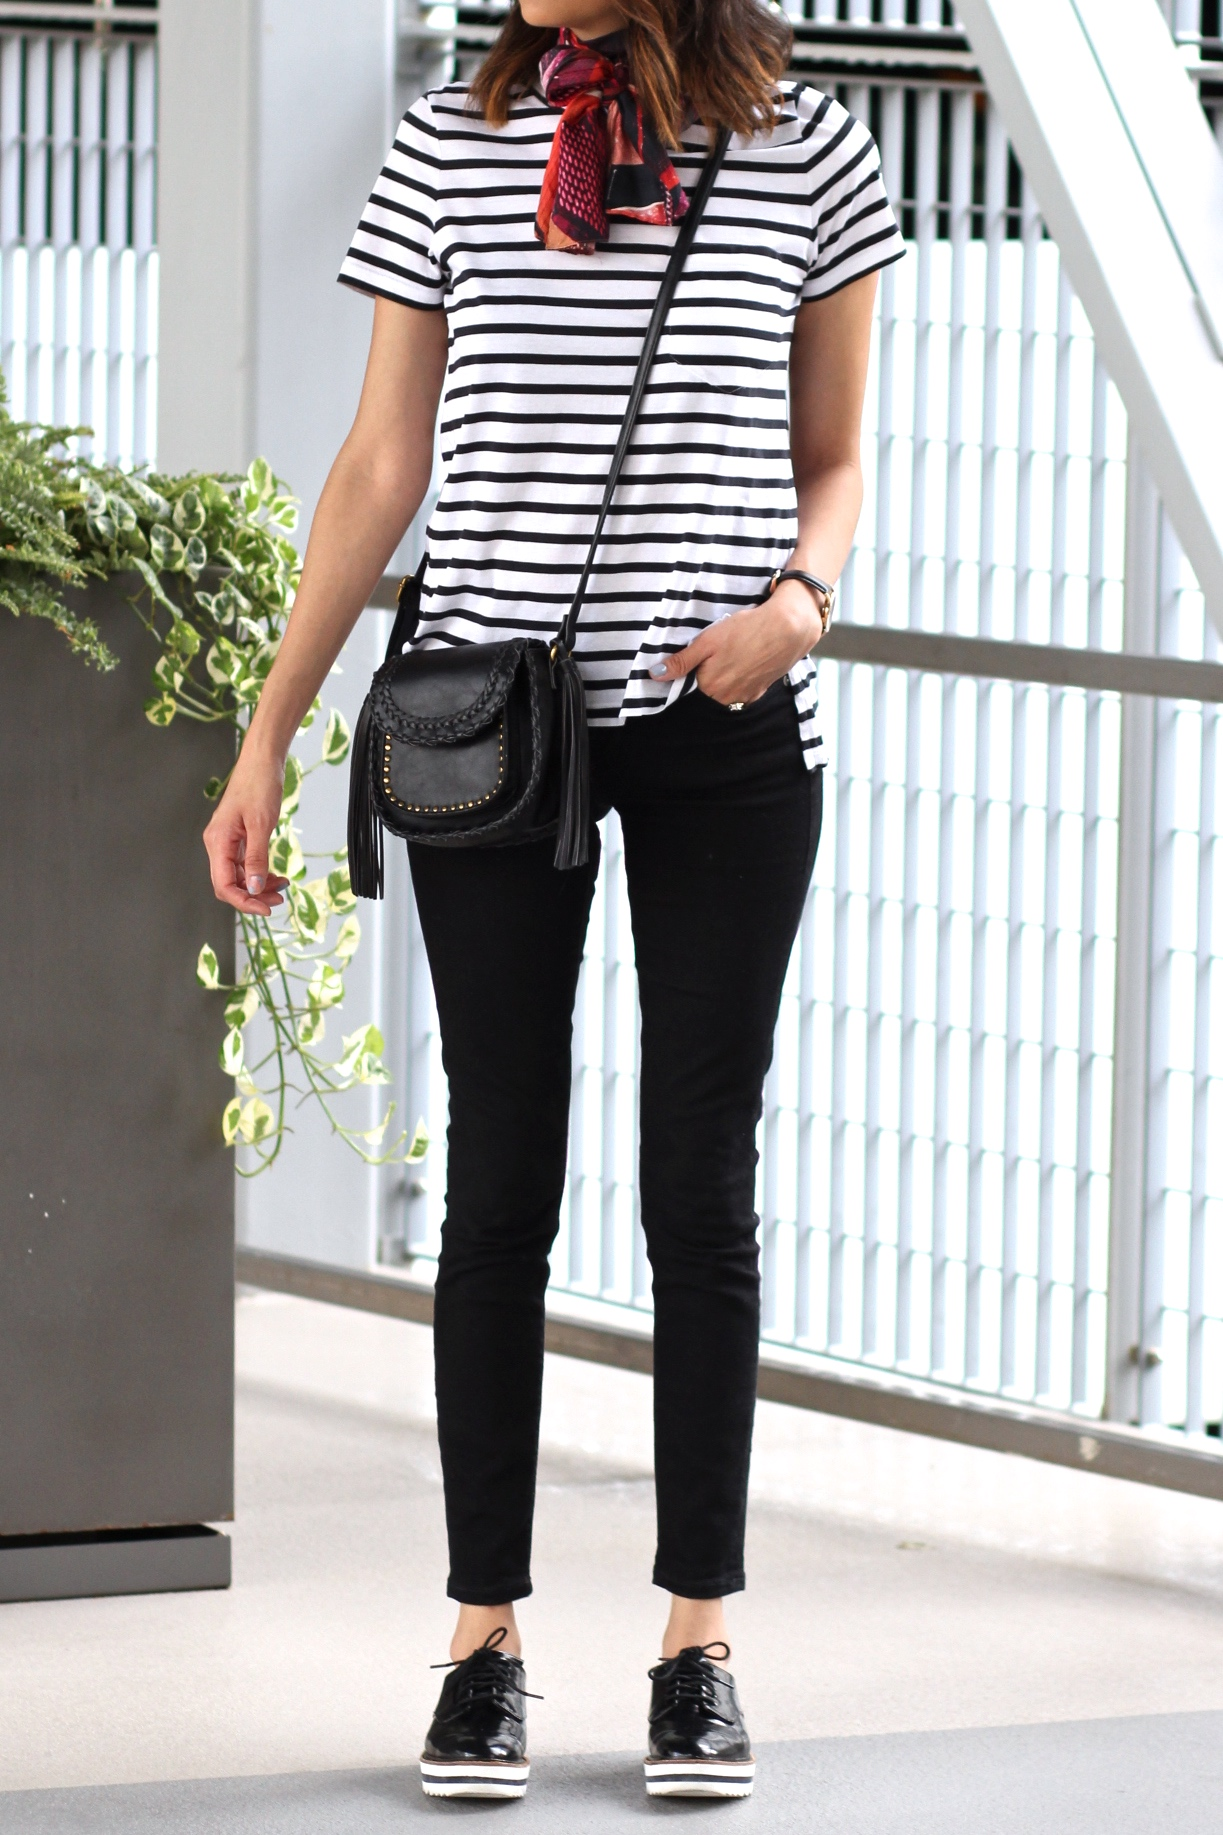 Lilly Beltran of Daily Craving blog wearing a striped tee and black Zara shoes